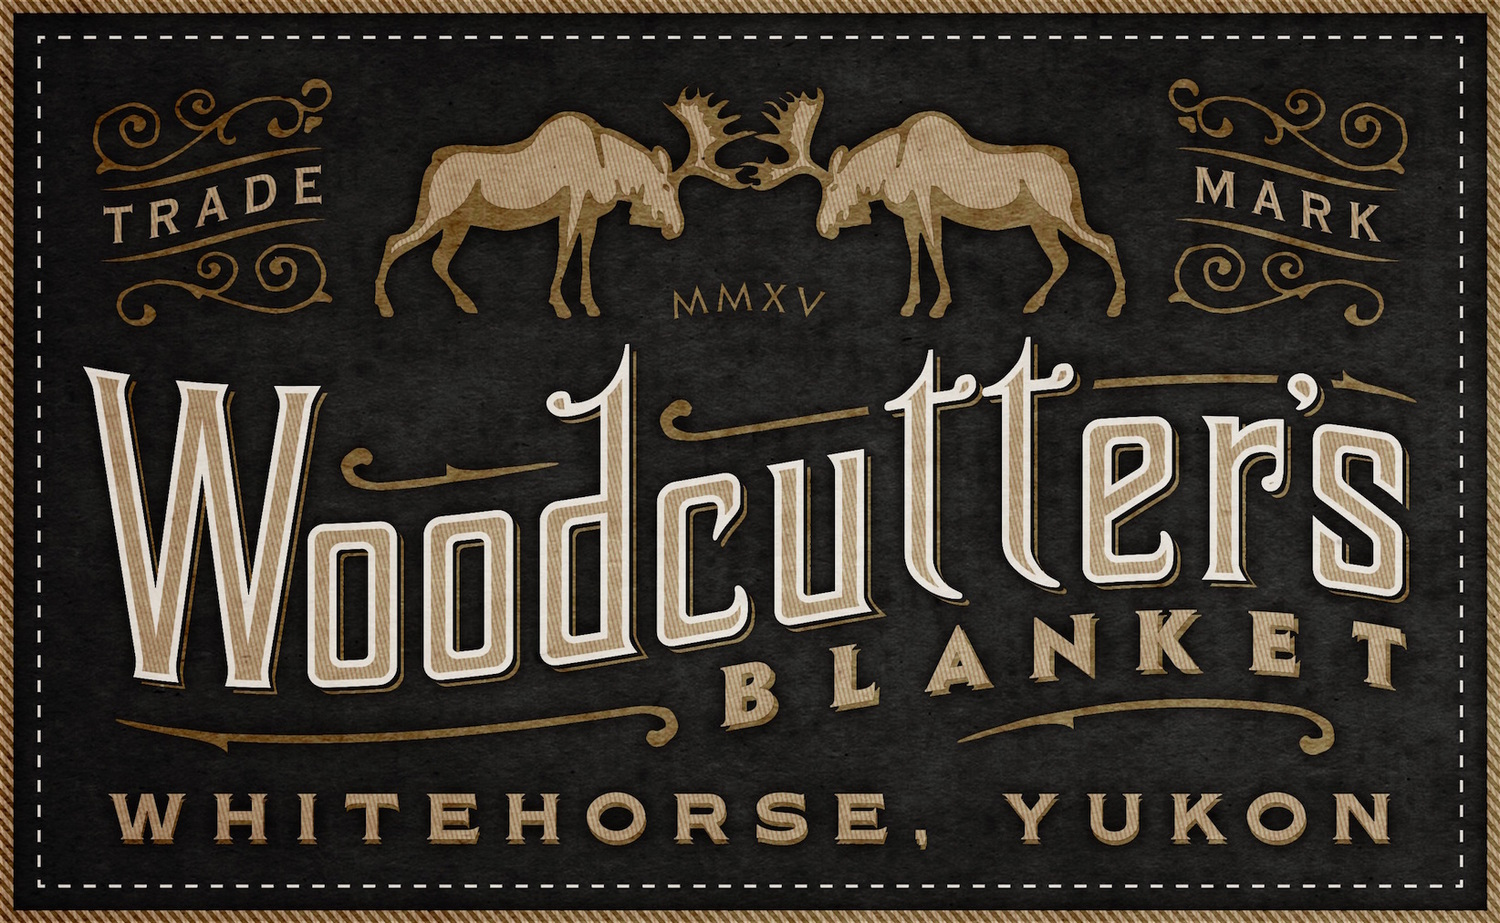 Woodcutter's Blanket